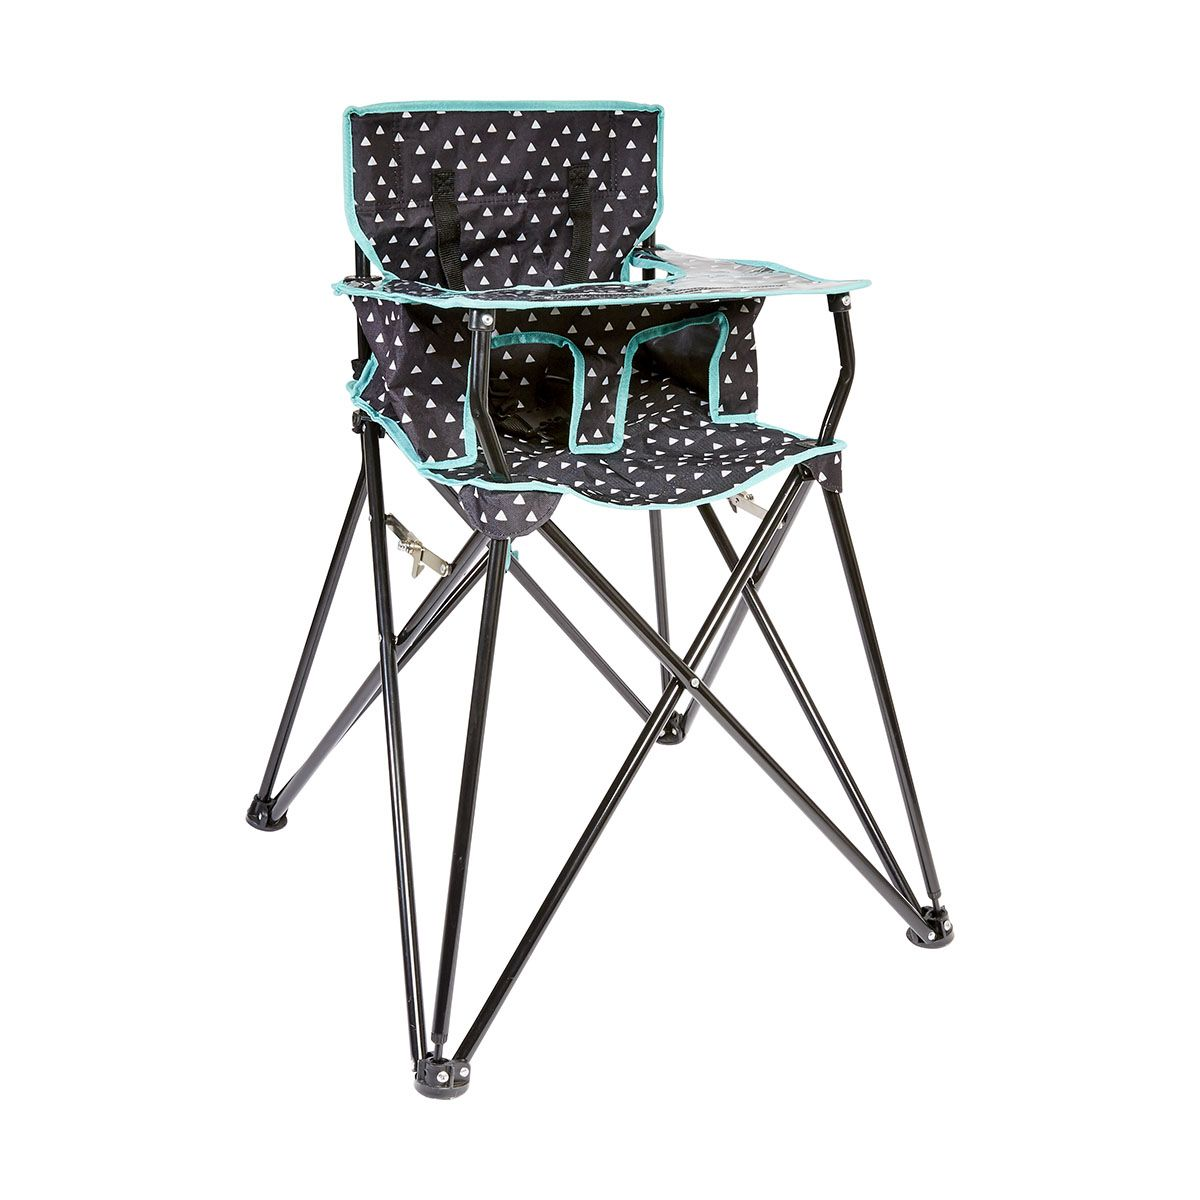 Baby Travel Camping High Folding Chair Kmart 29 Portable High Chairs Chair Purple Dining Chairs